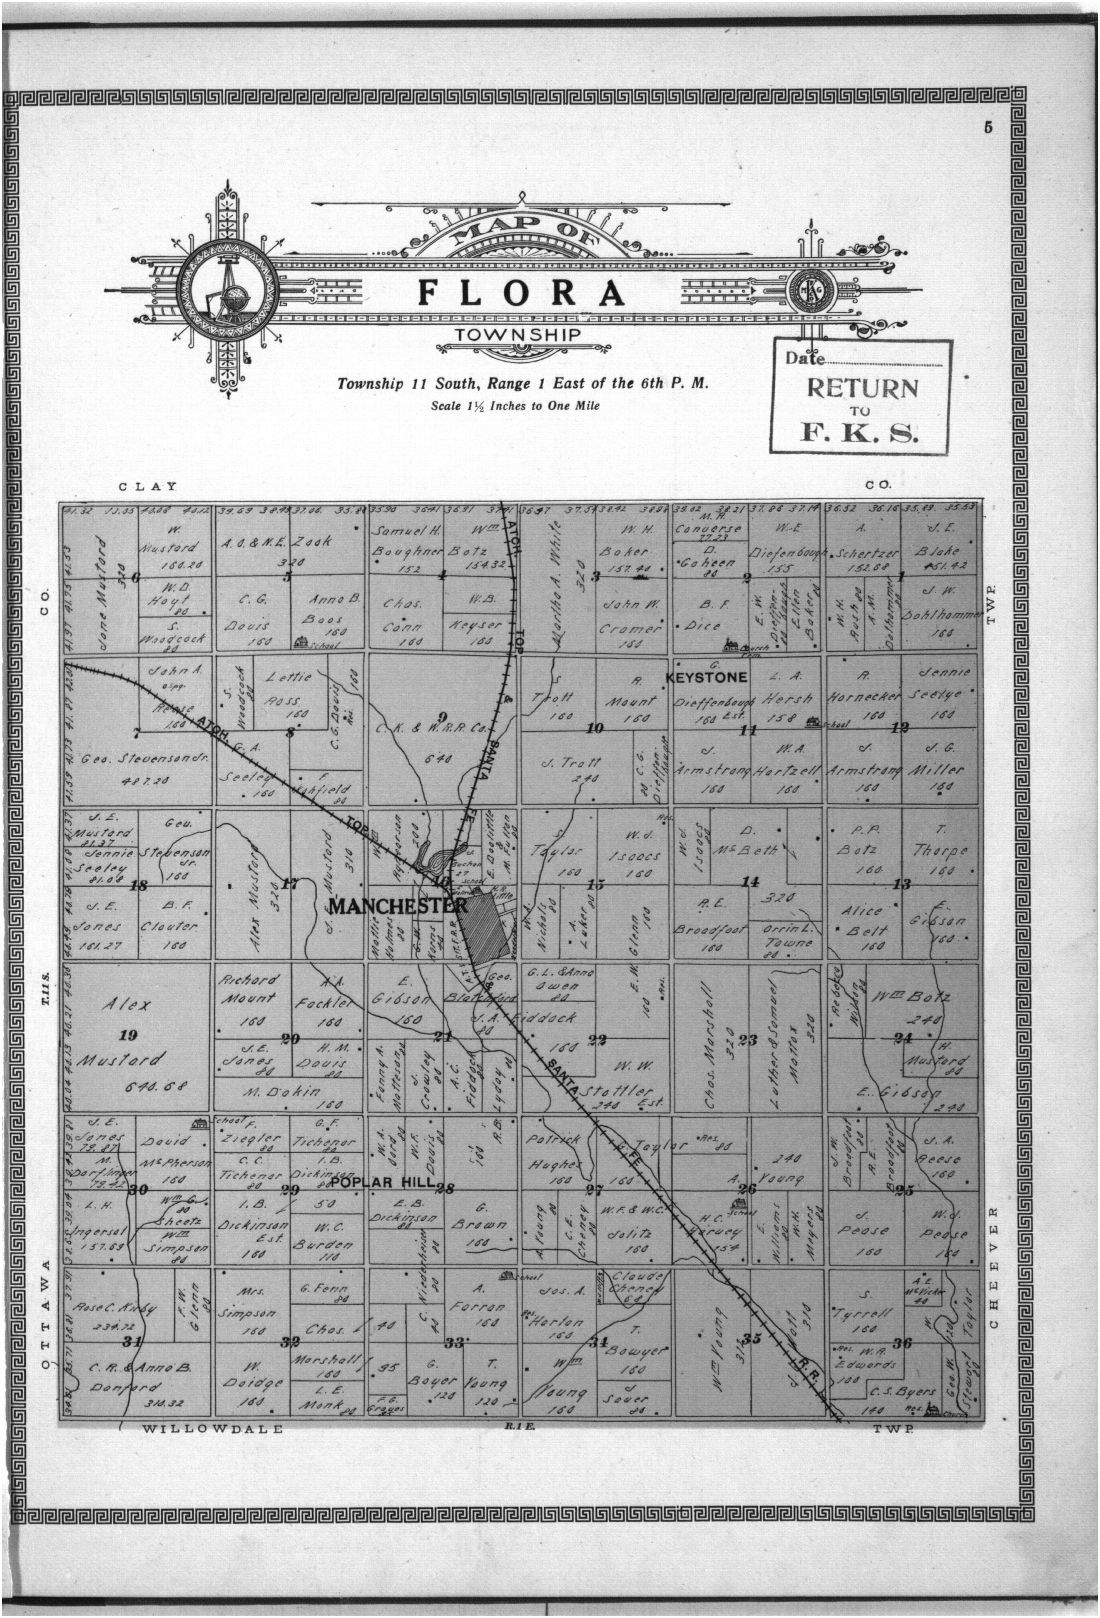 Plat book and complete survey of Dickinson County, Kansas - 5